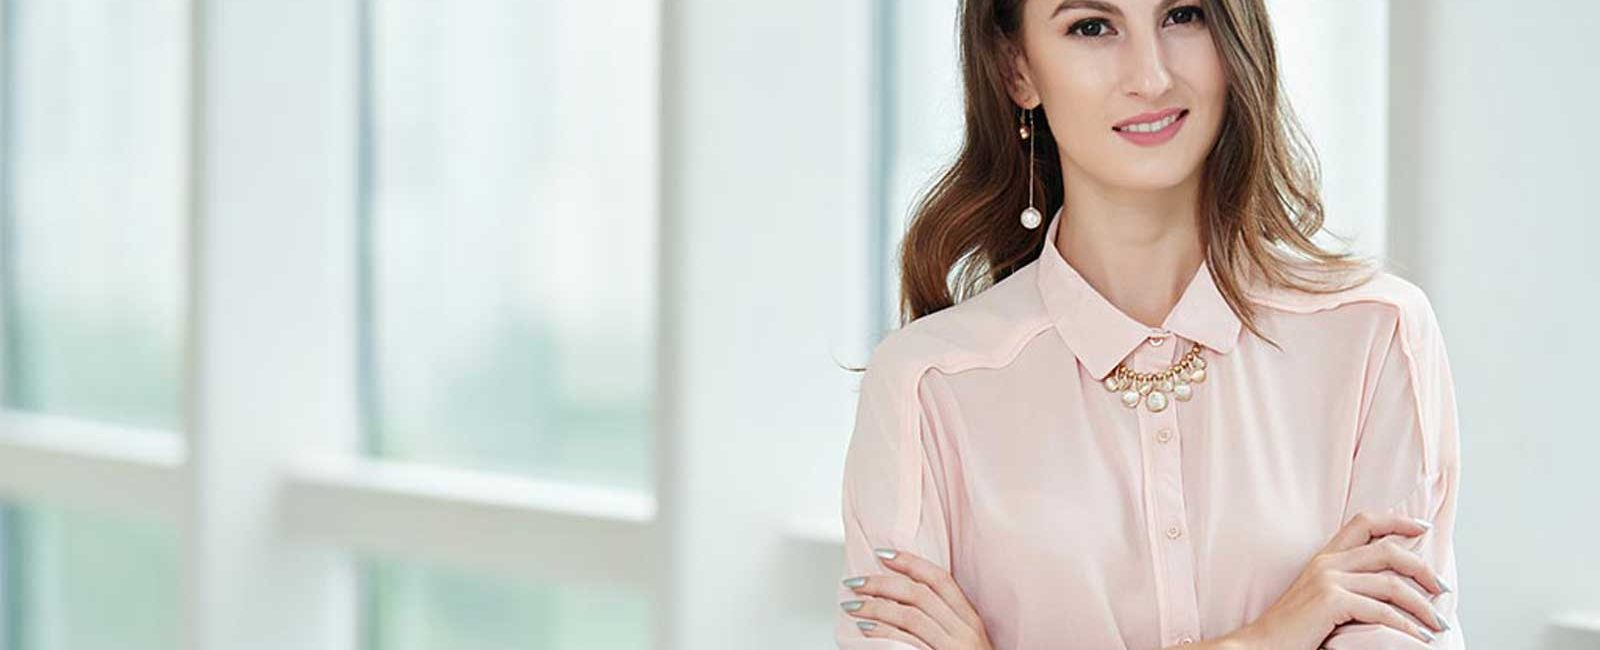 Best 9 Outfit Ideas for Office Going Women